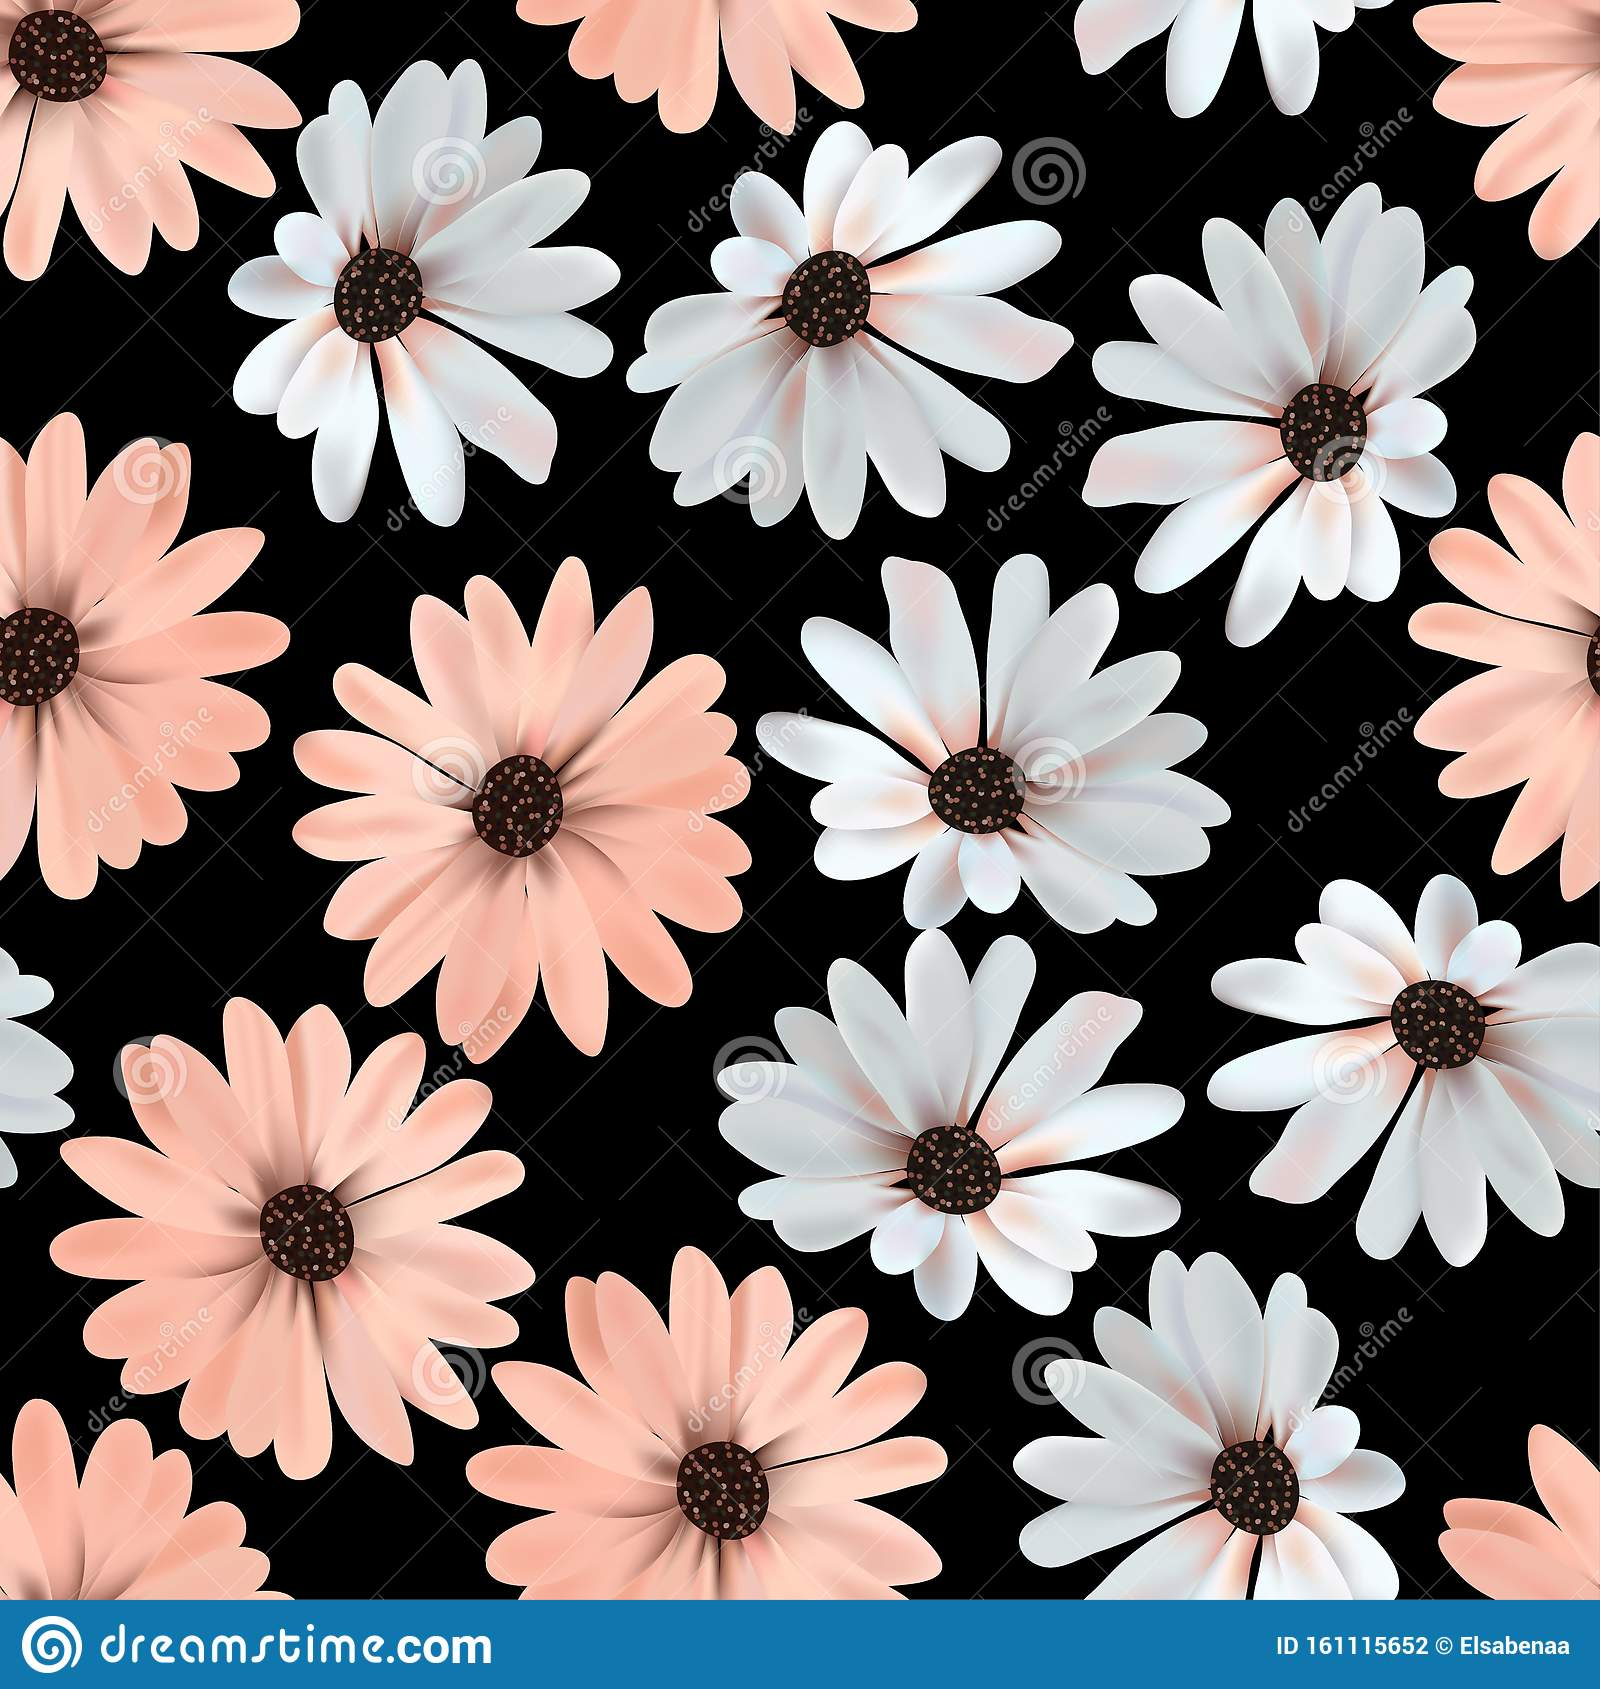 Daisy Flower Seamless Pattern Black Background Stock Illustration